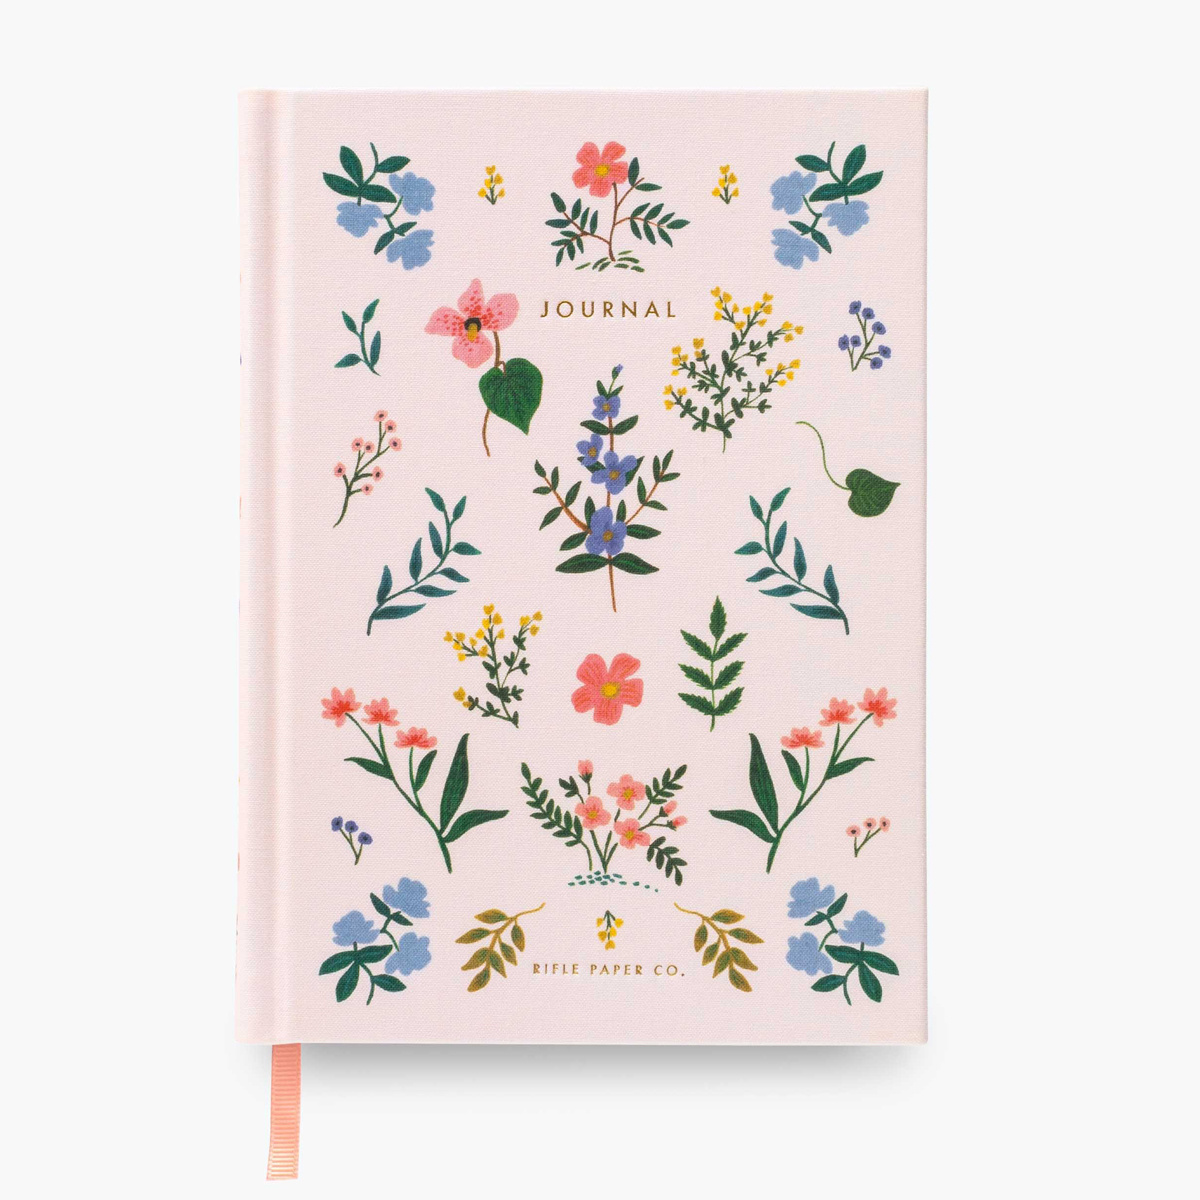 Rifle Paper Co - RP Wildwood Fabric Journal, lined